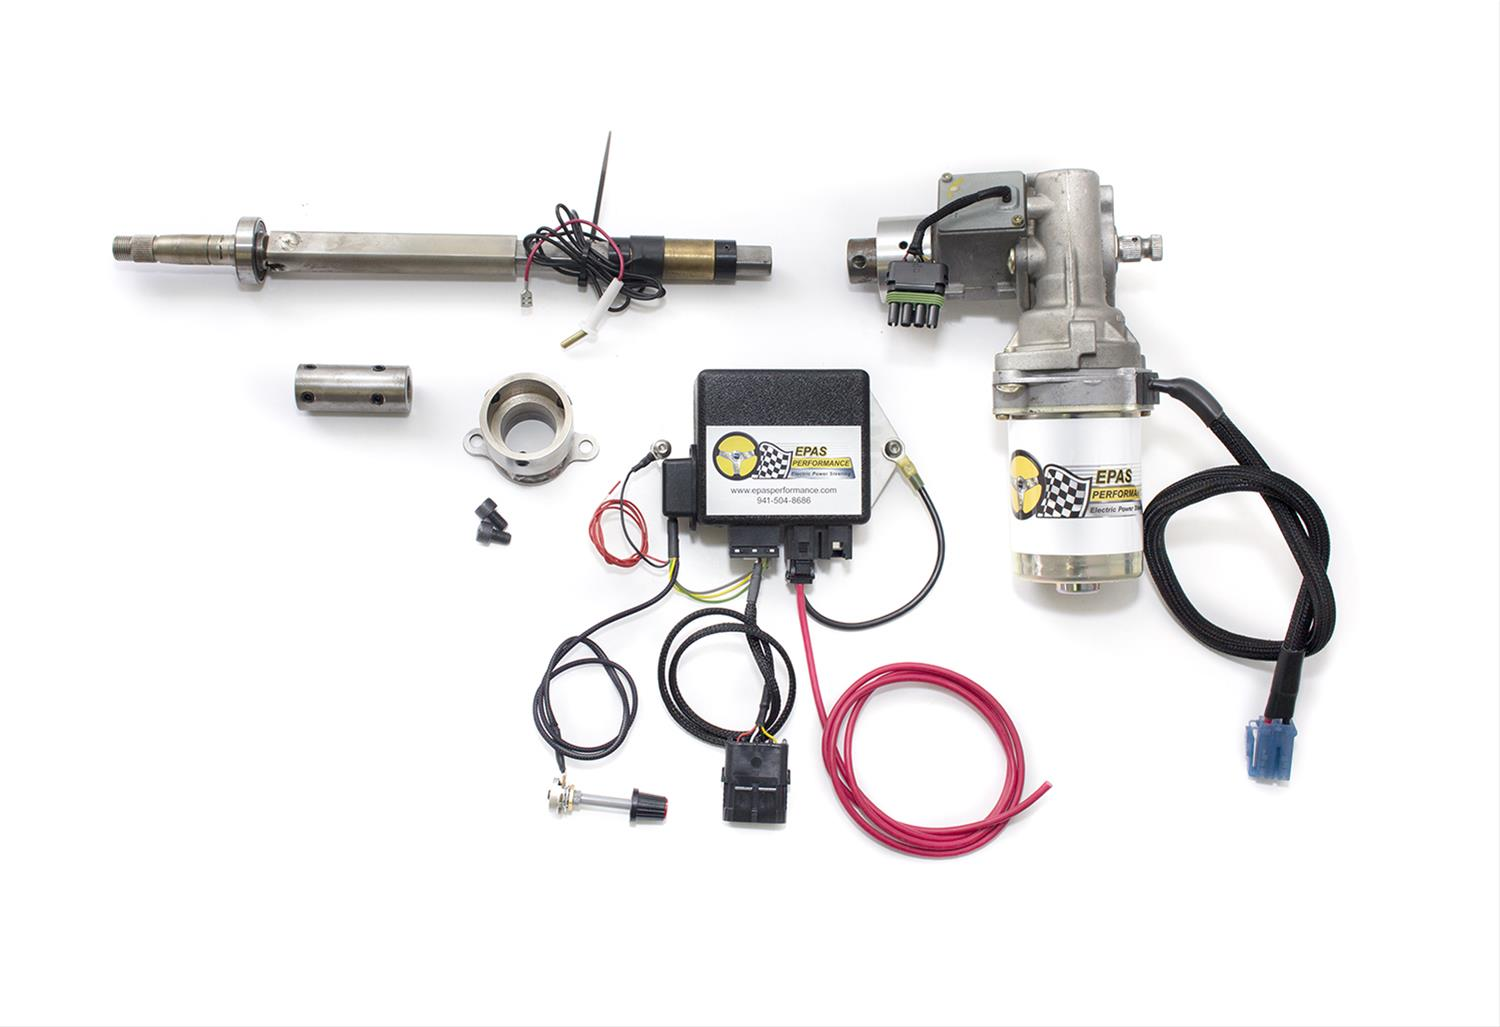 Epas Performance Electric Steering Kits 1010 Free Shipping On Orders Over 99 At Summit Racing